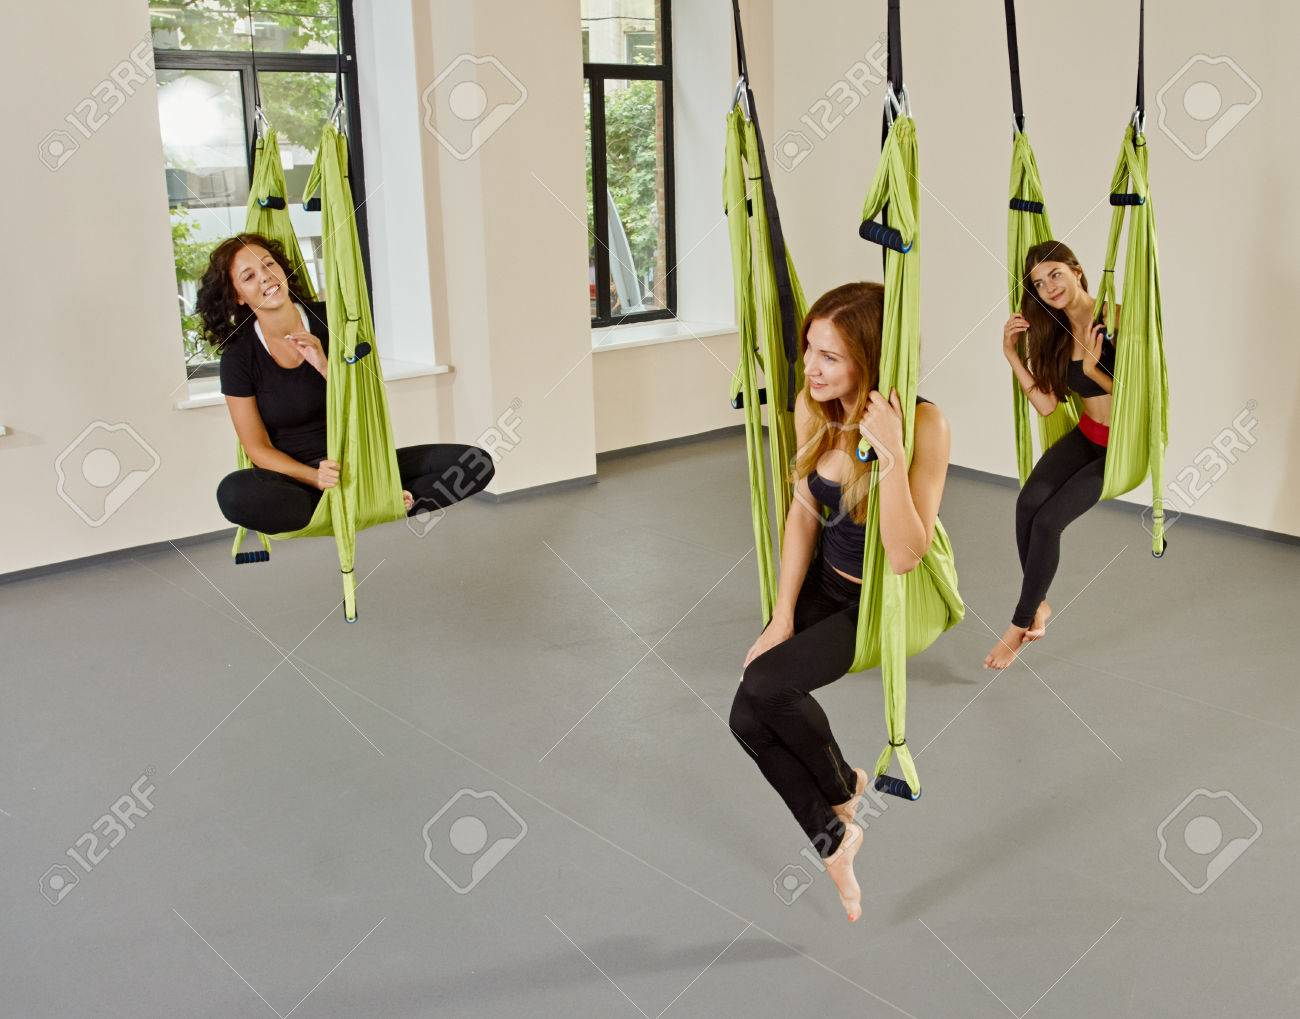 young women posing in anti gravity aerial yoga green hammock  indoor fitness club  young women posing in anti gravity aerial yoga green hammock      rh   123rf